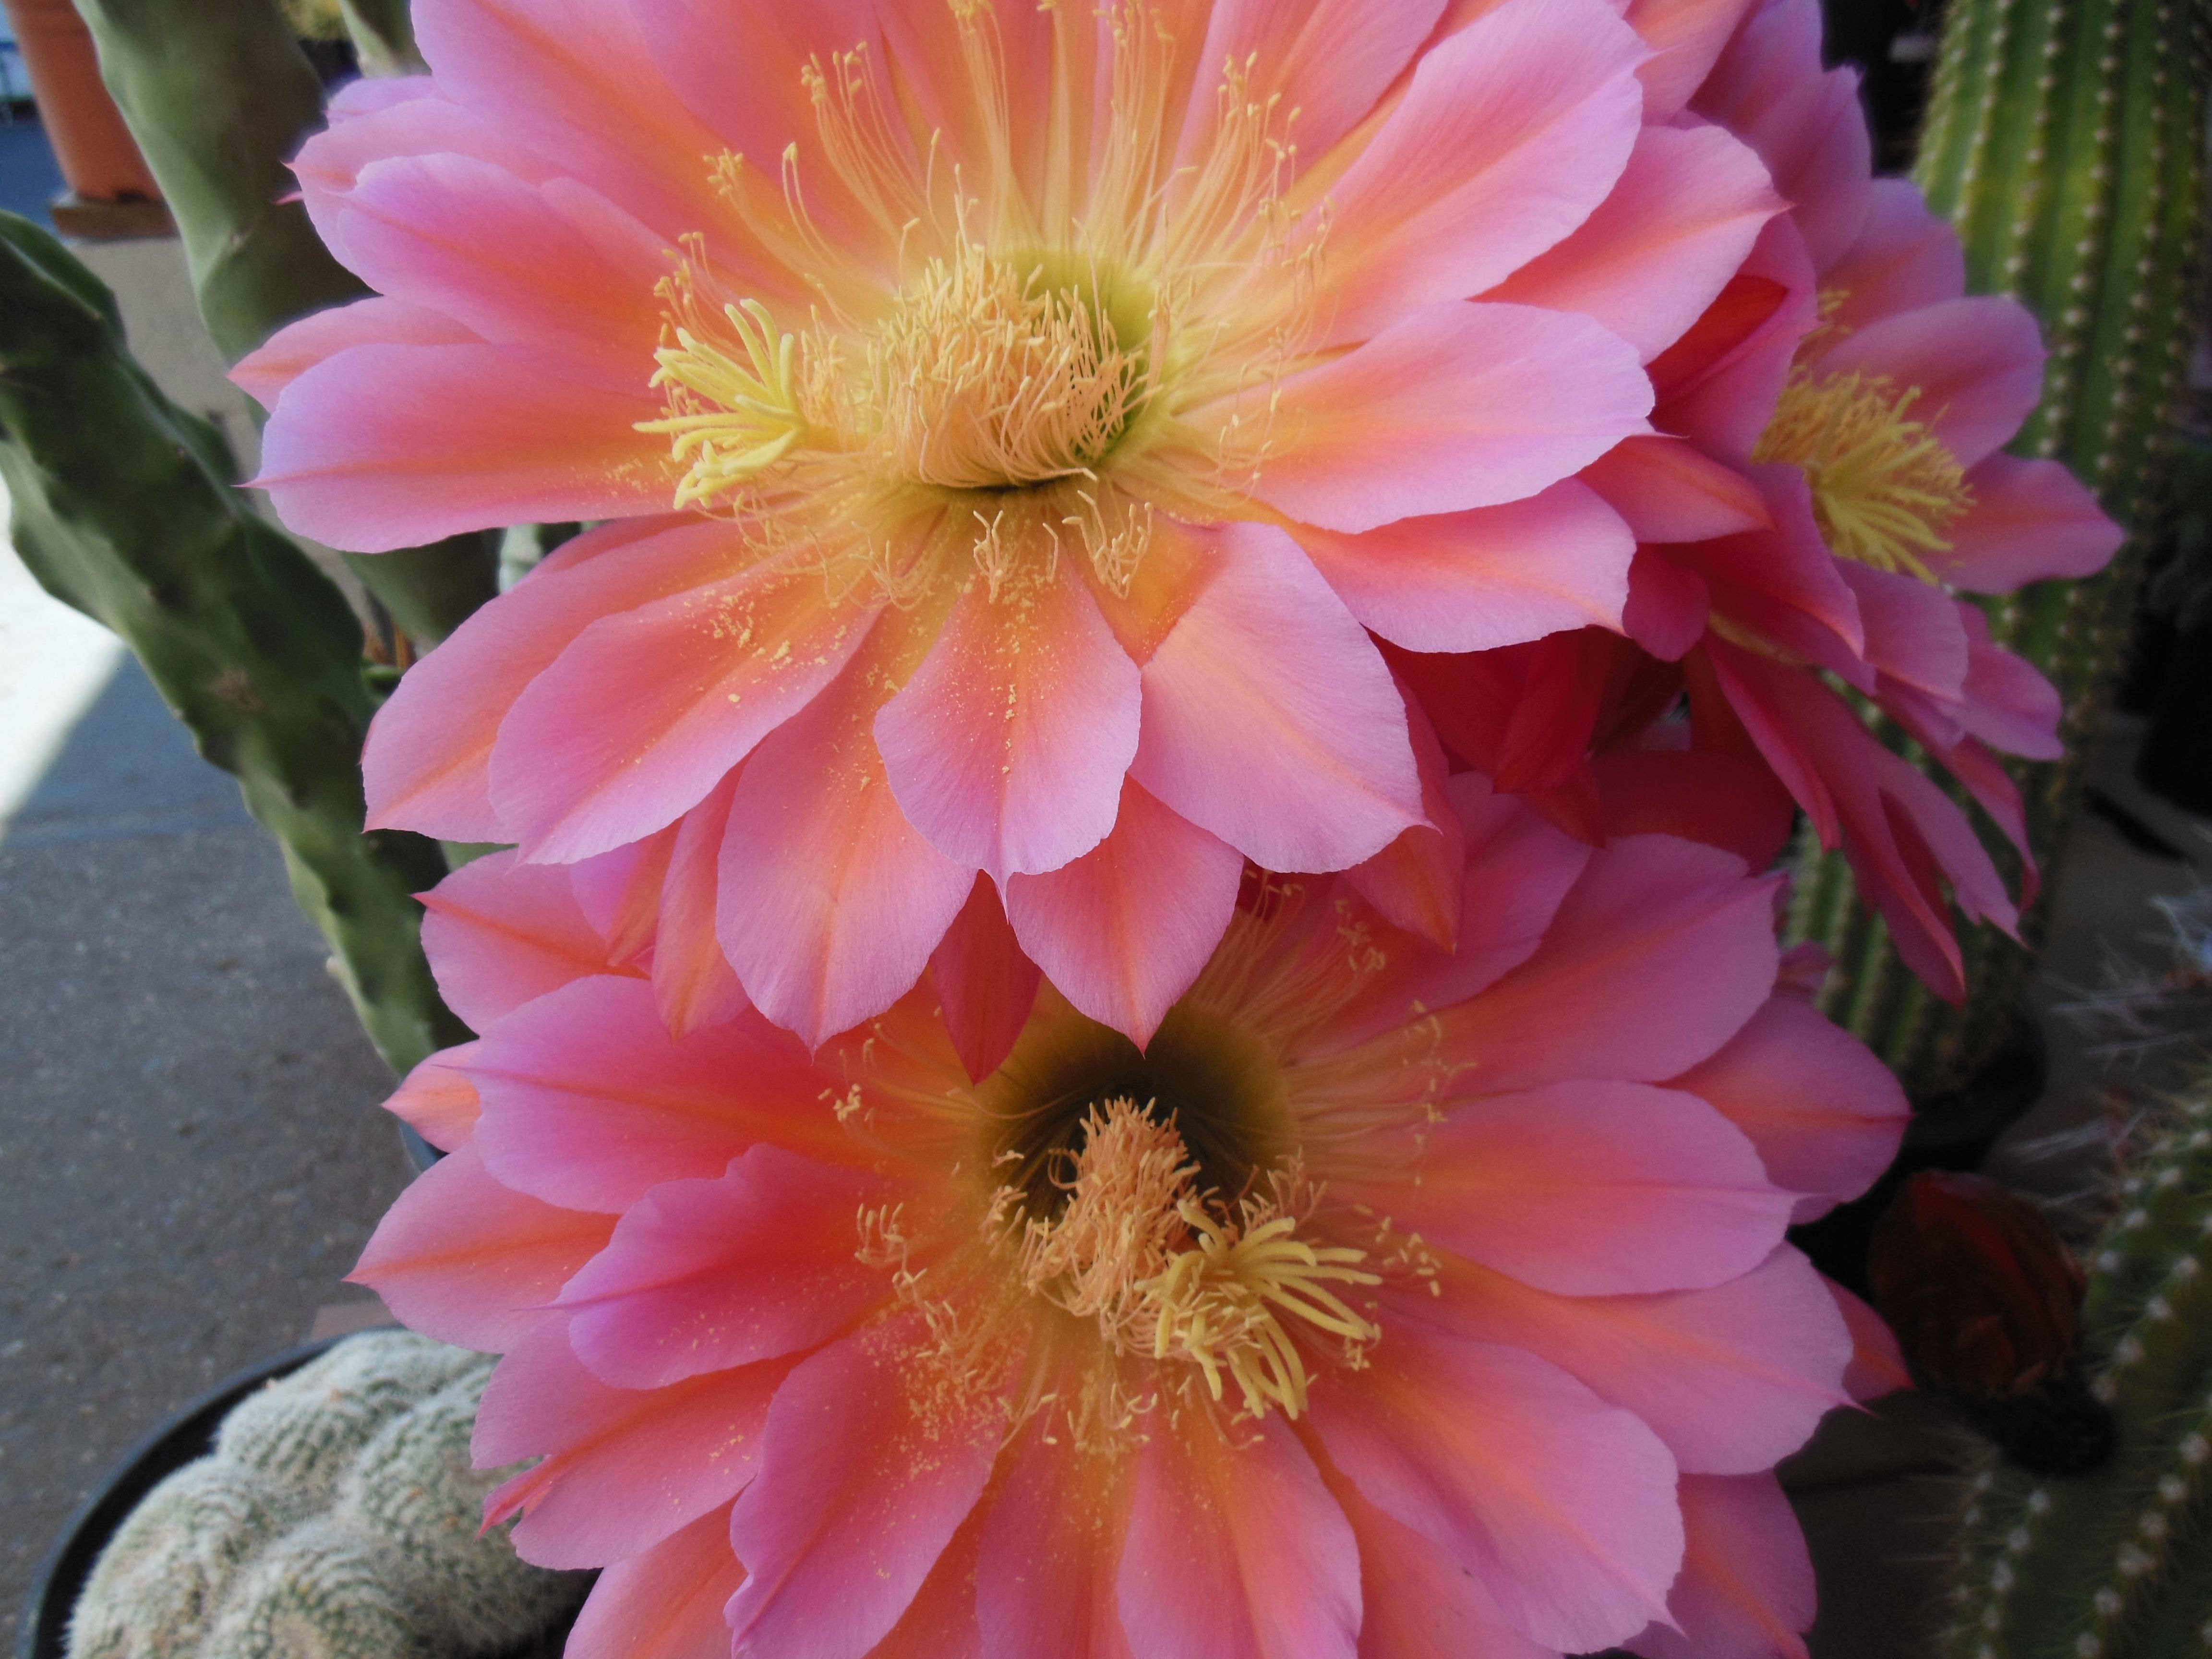 A Beautiful Cactus Flower Larger Than Your Spread Open Hand